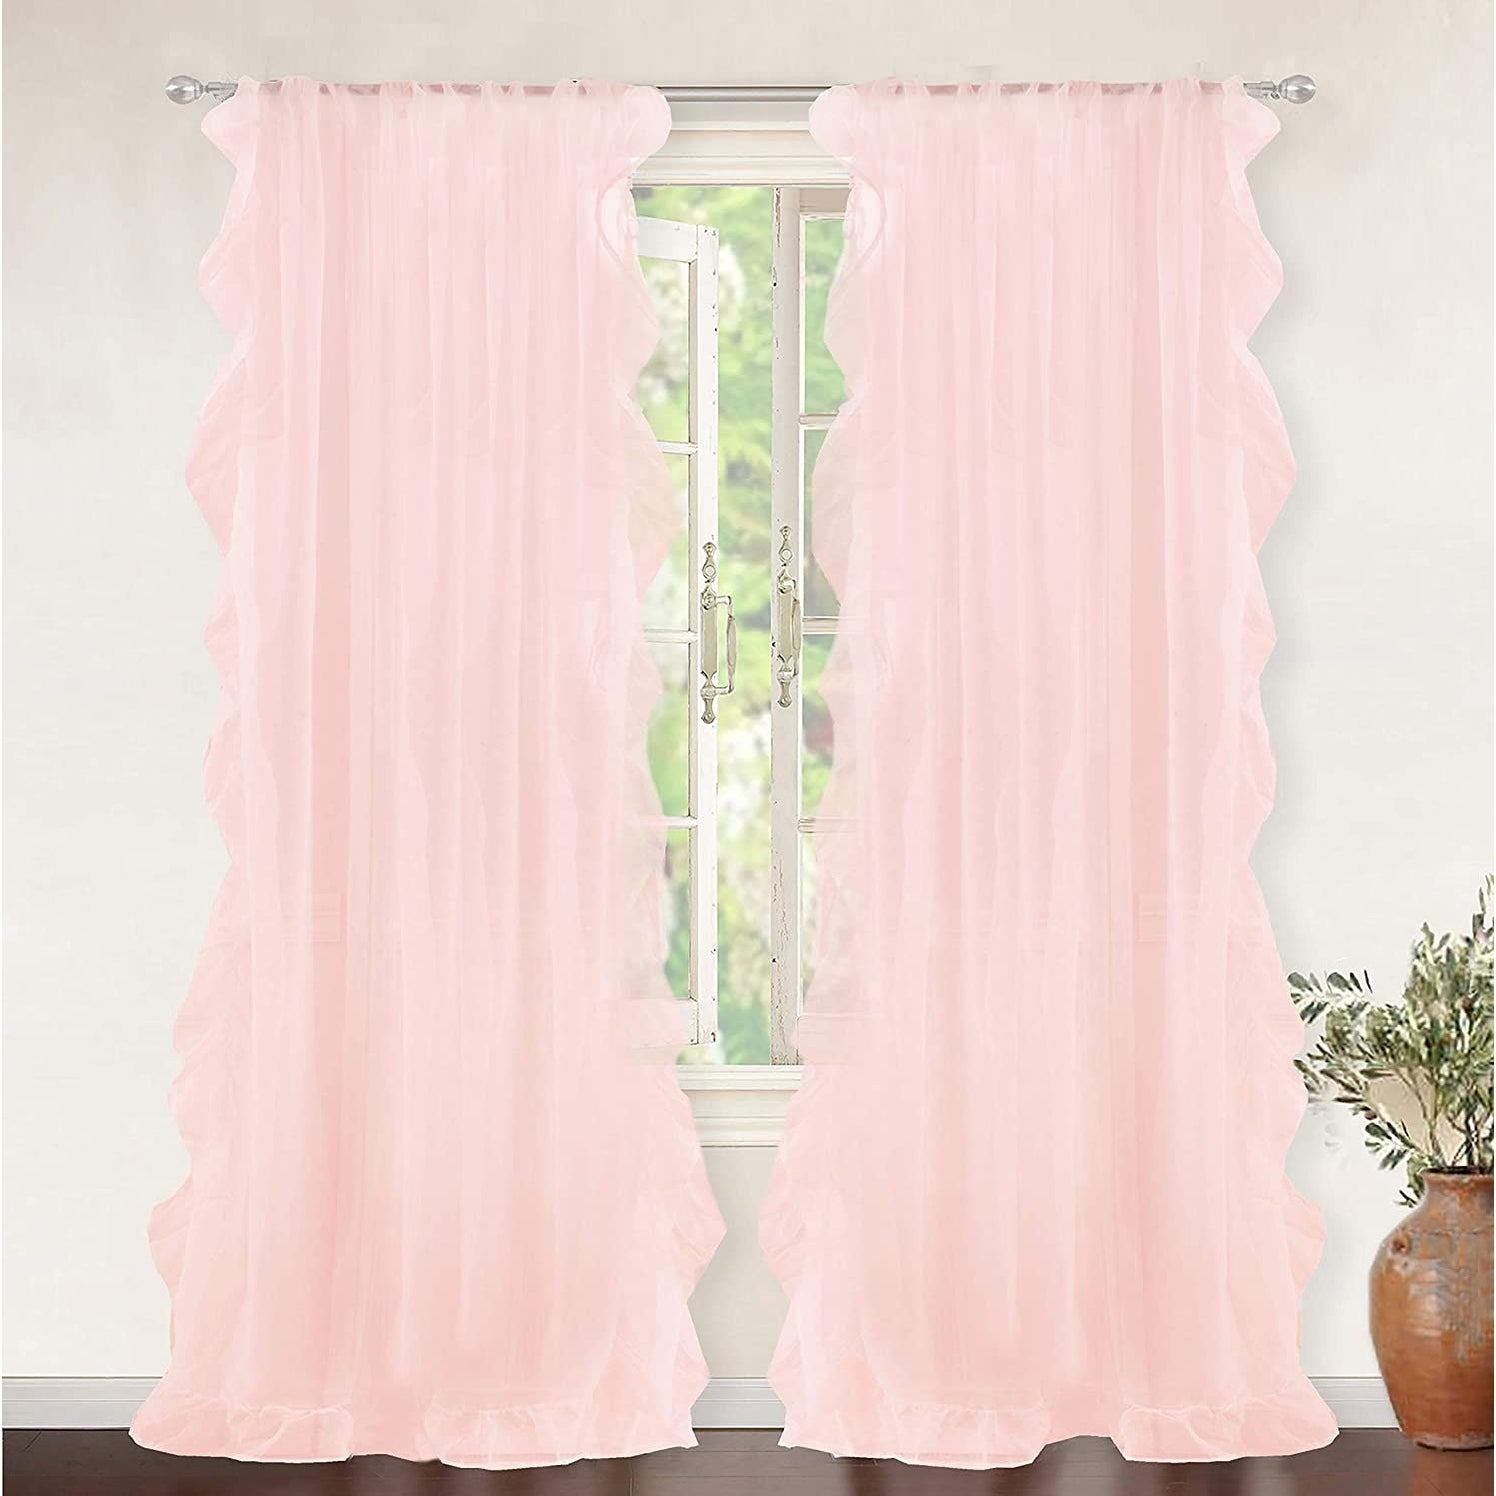 Driftaway Sophie Solid Sheer White Voile Window Curtains Ruffle Edge Rod Pocket 2 Panels 52 Width X 84 Length Overstock 32038738